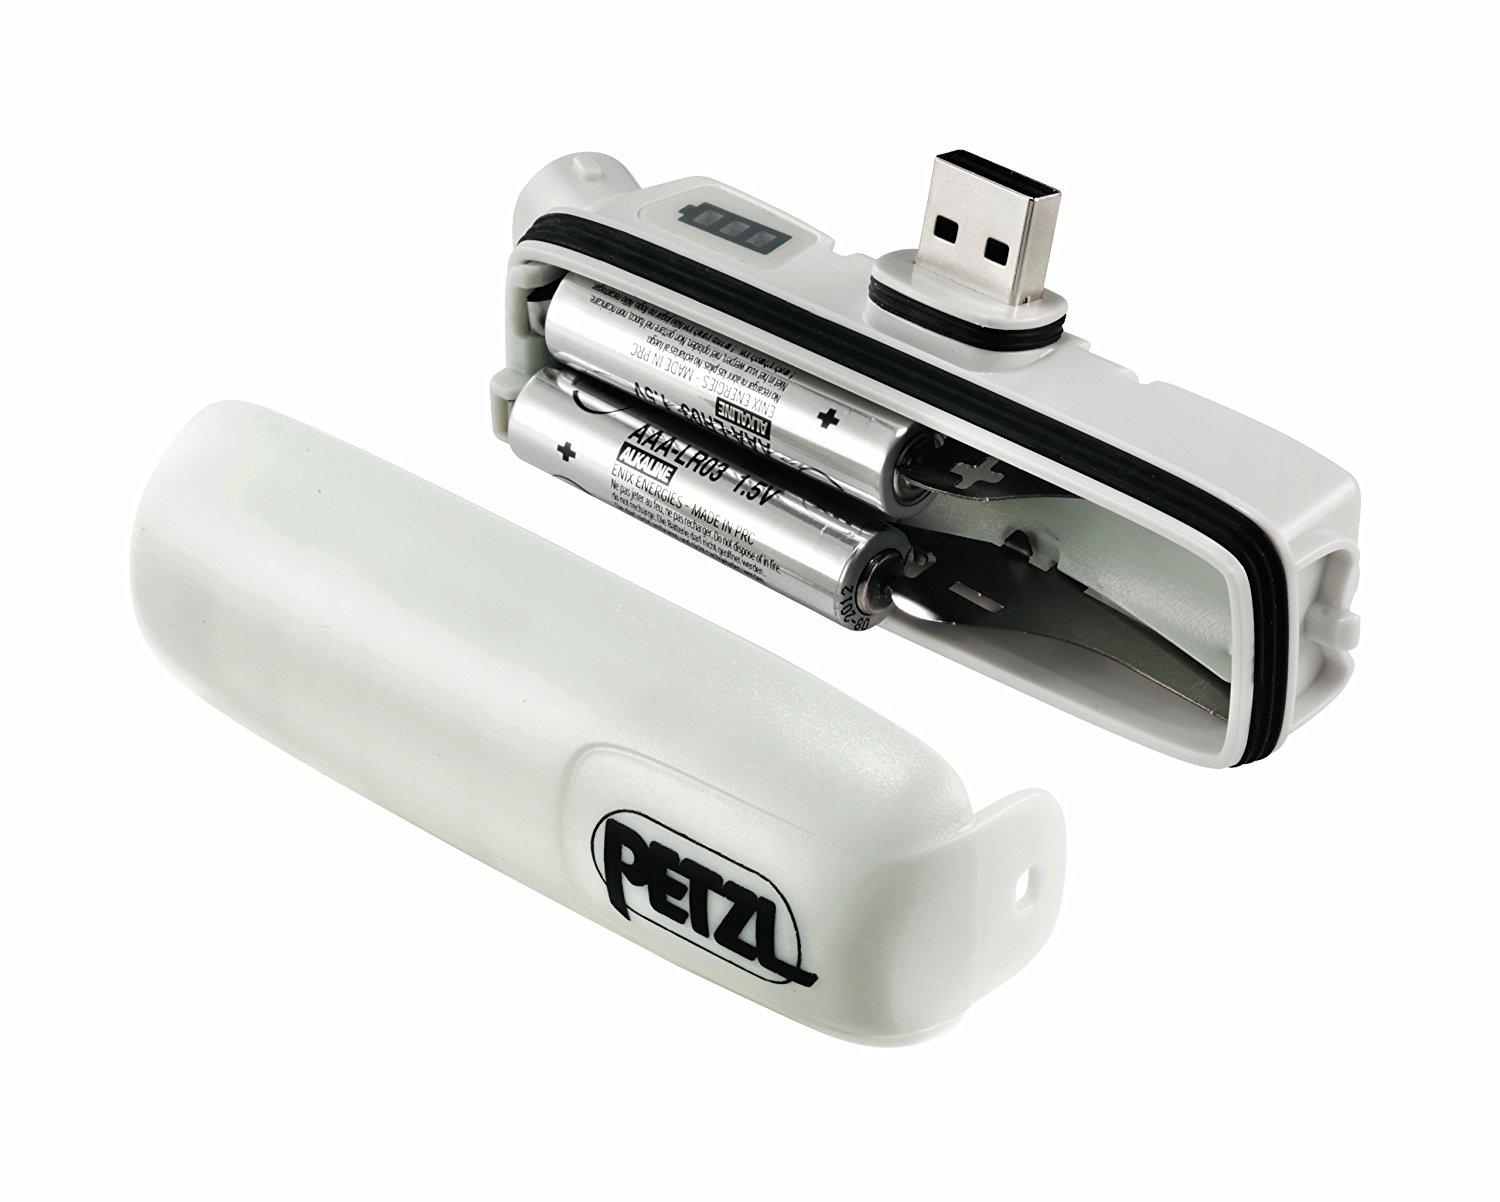 Battery compartment for Petzl Nao 2, showing two AAA batteries installed for emergency use.